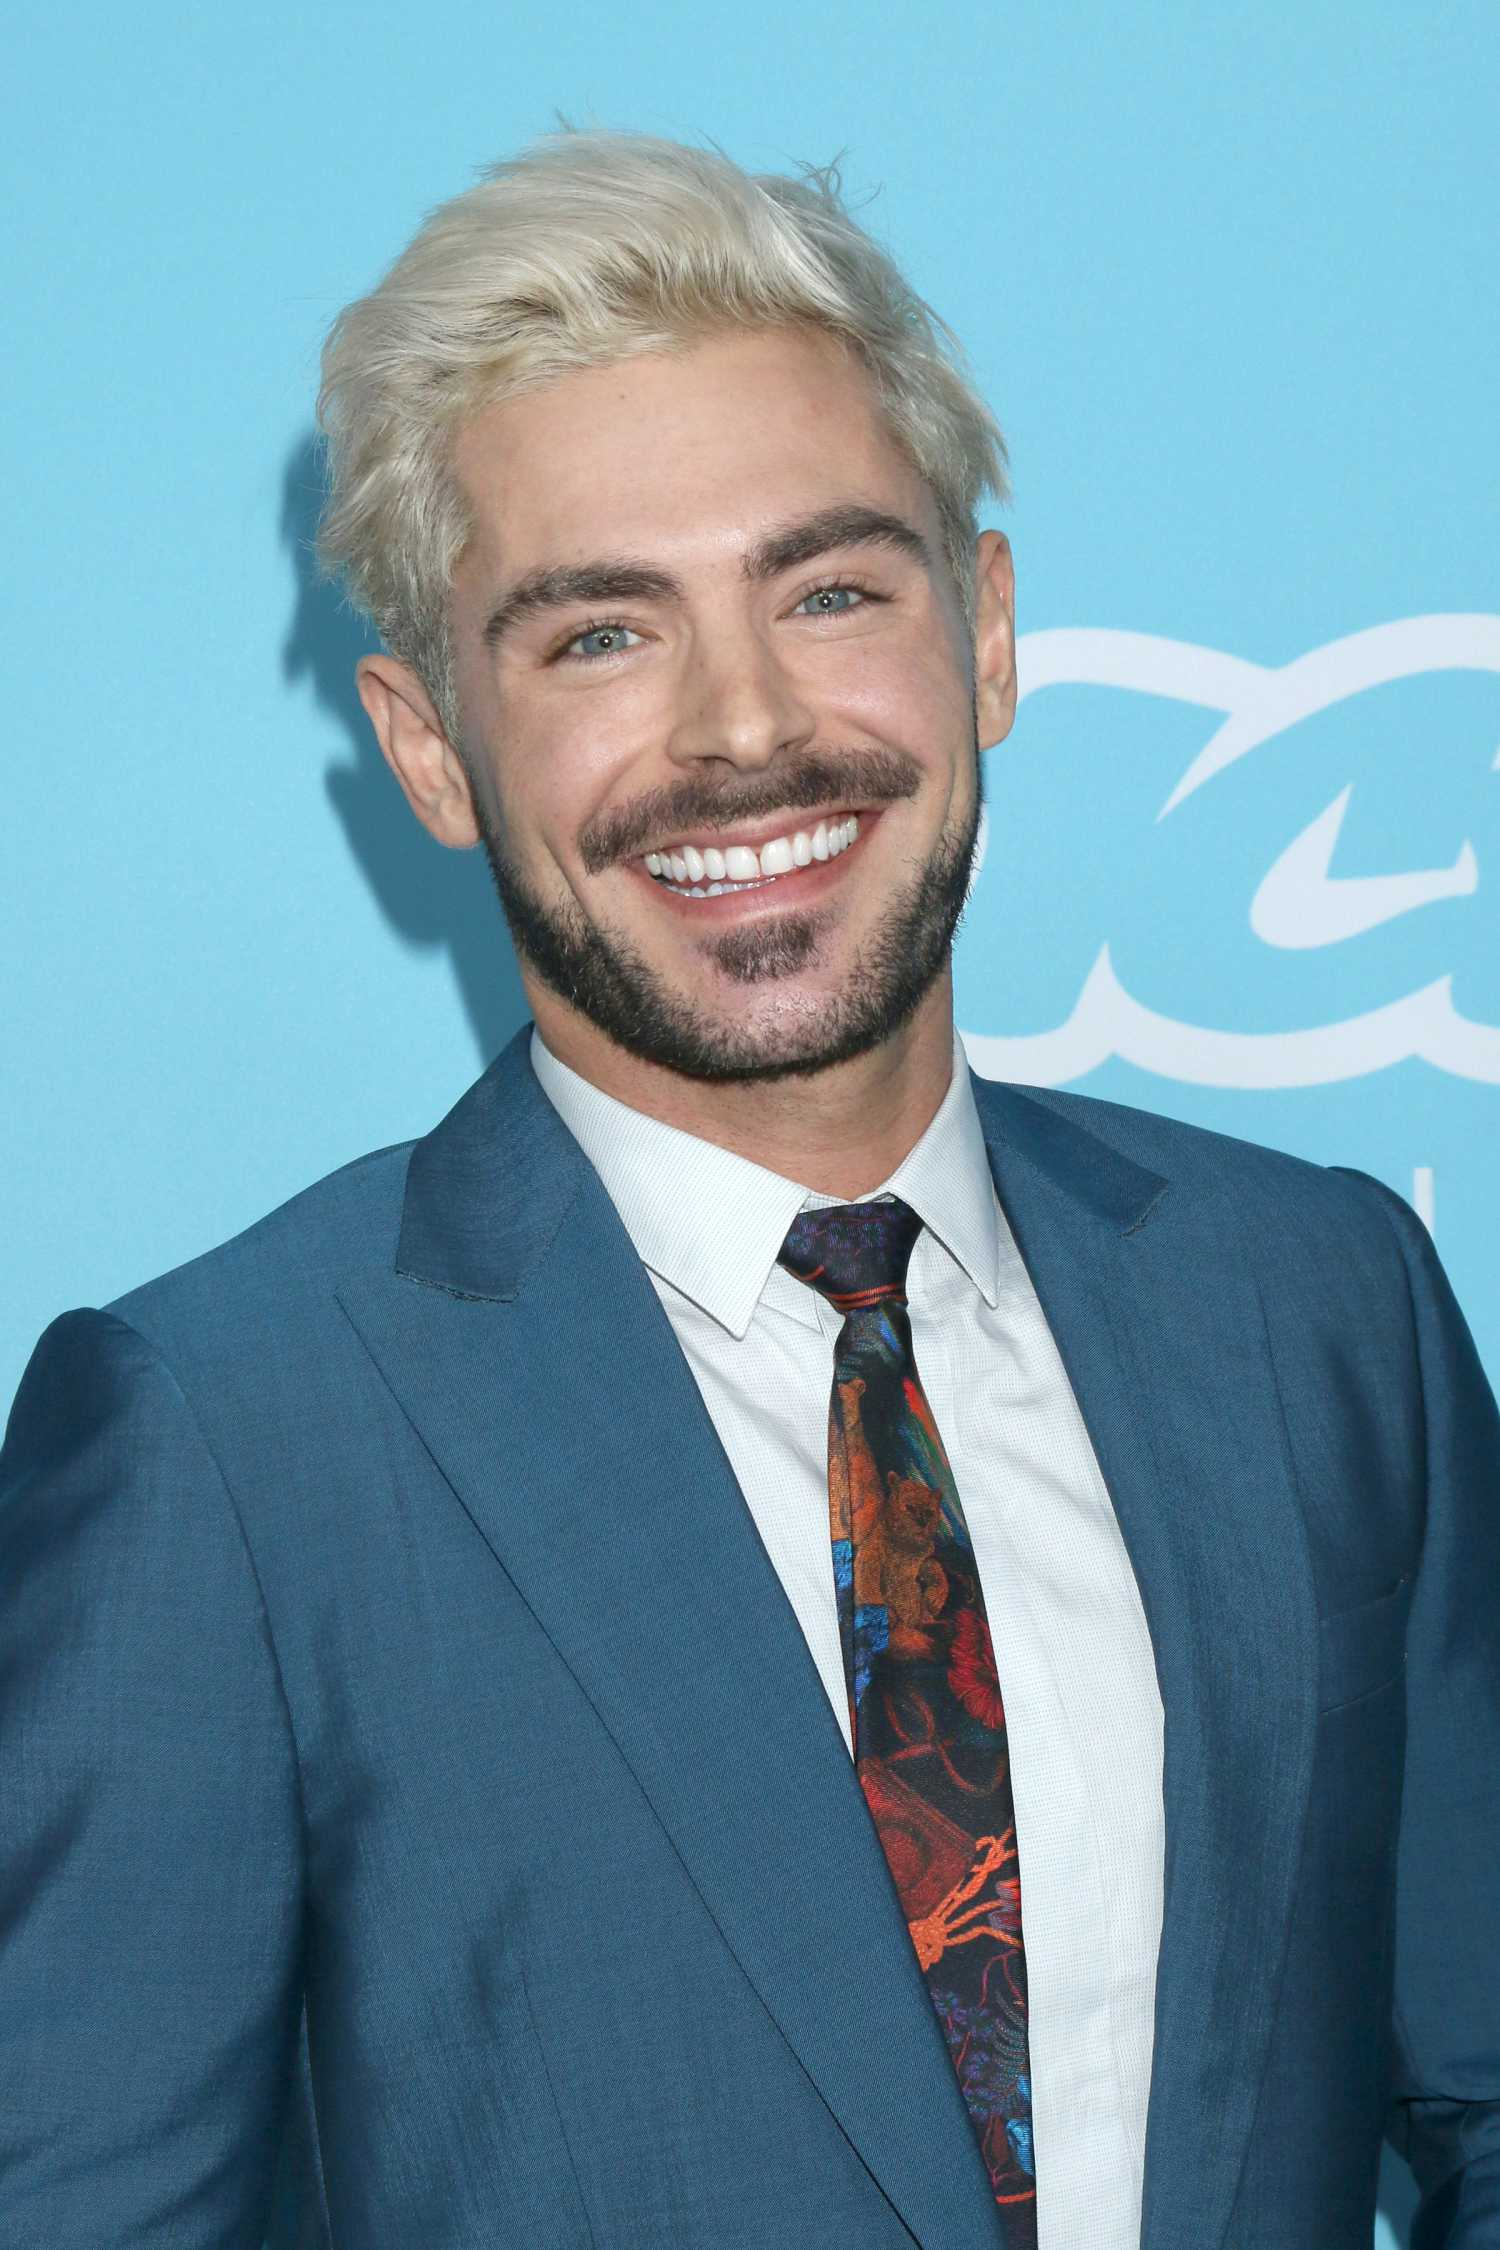 Zac Efron Attends The Beach Bum Premiere in Hollywood ...